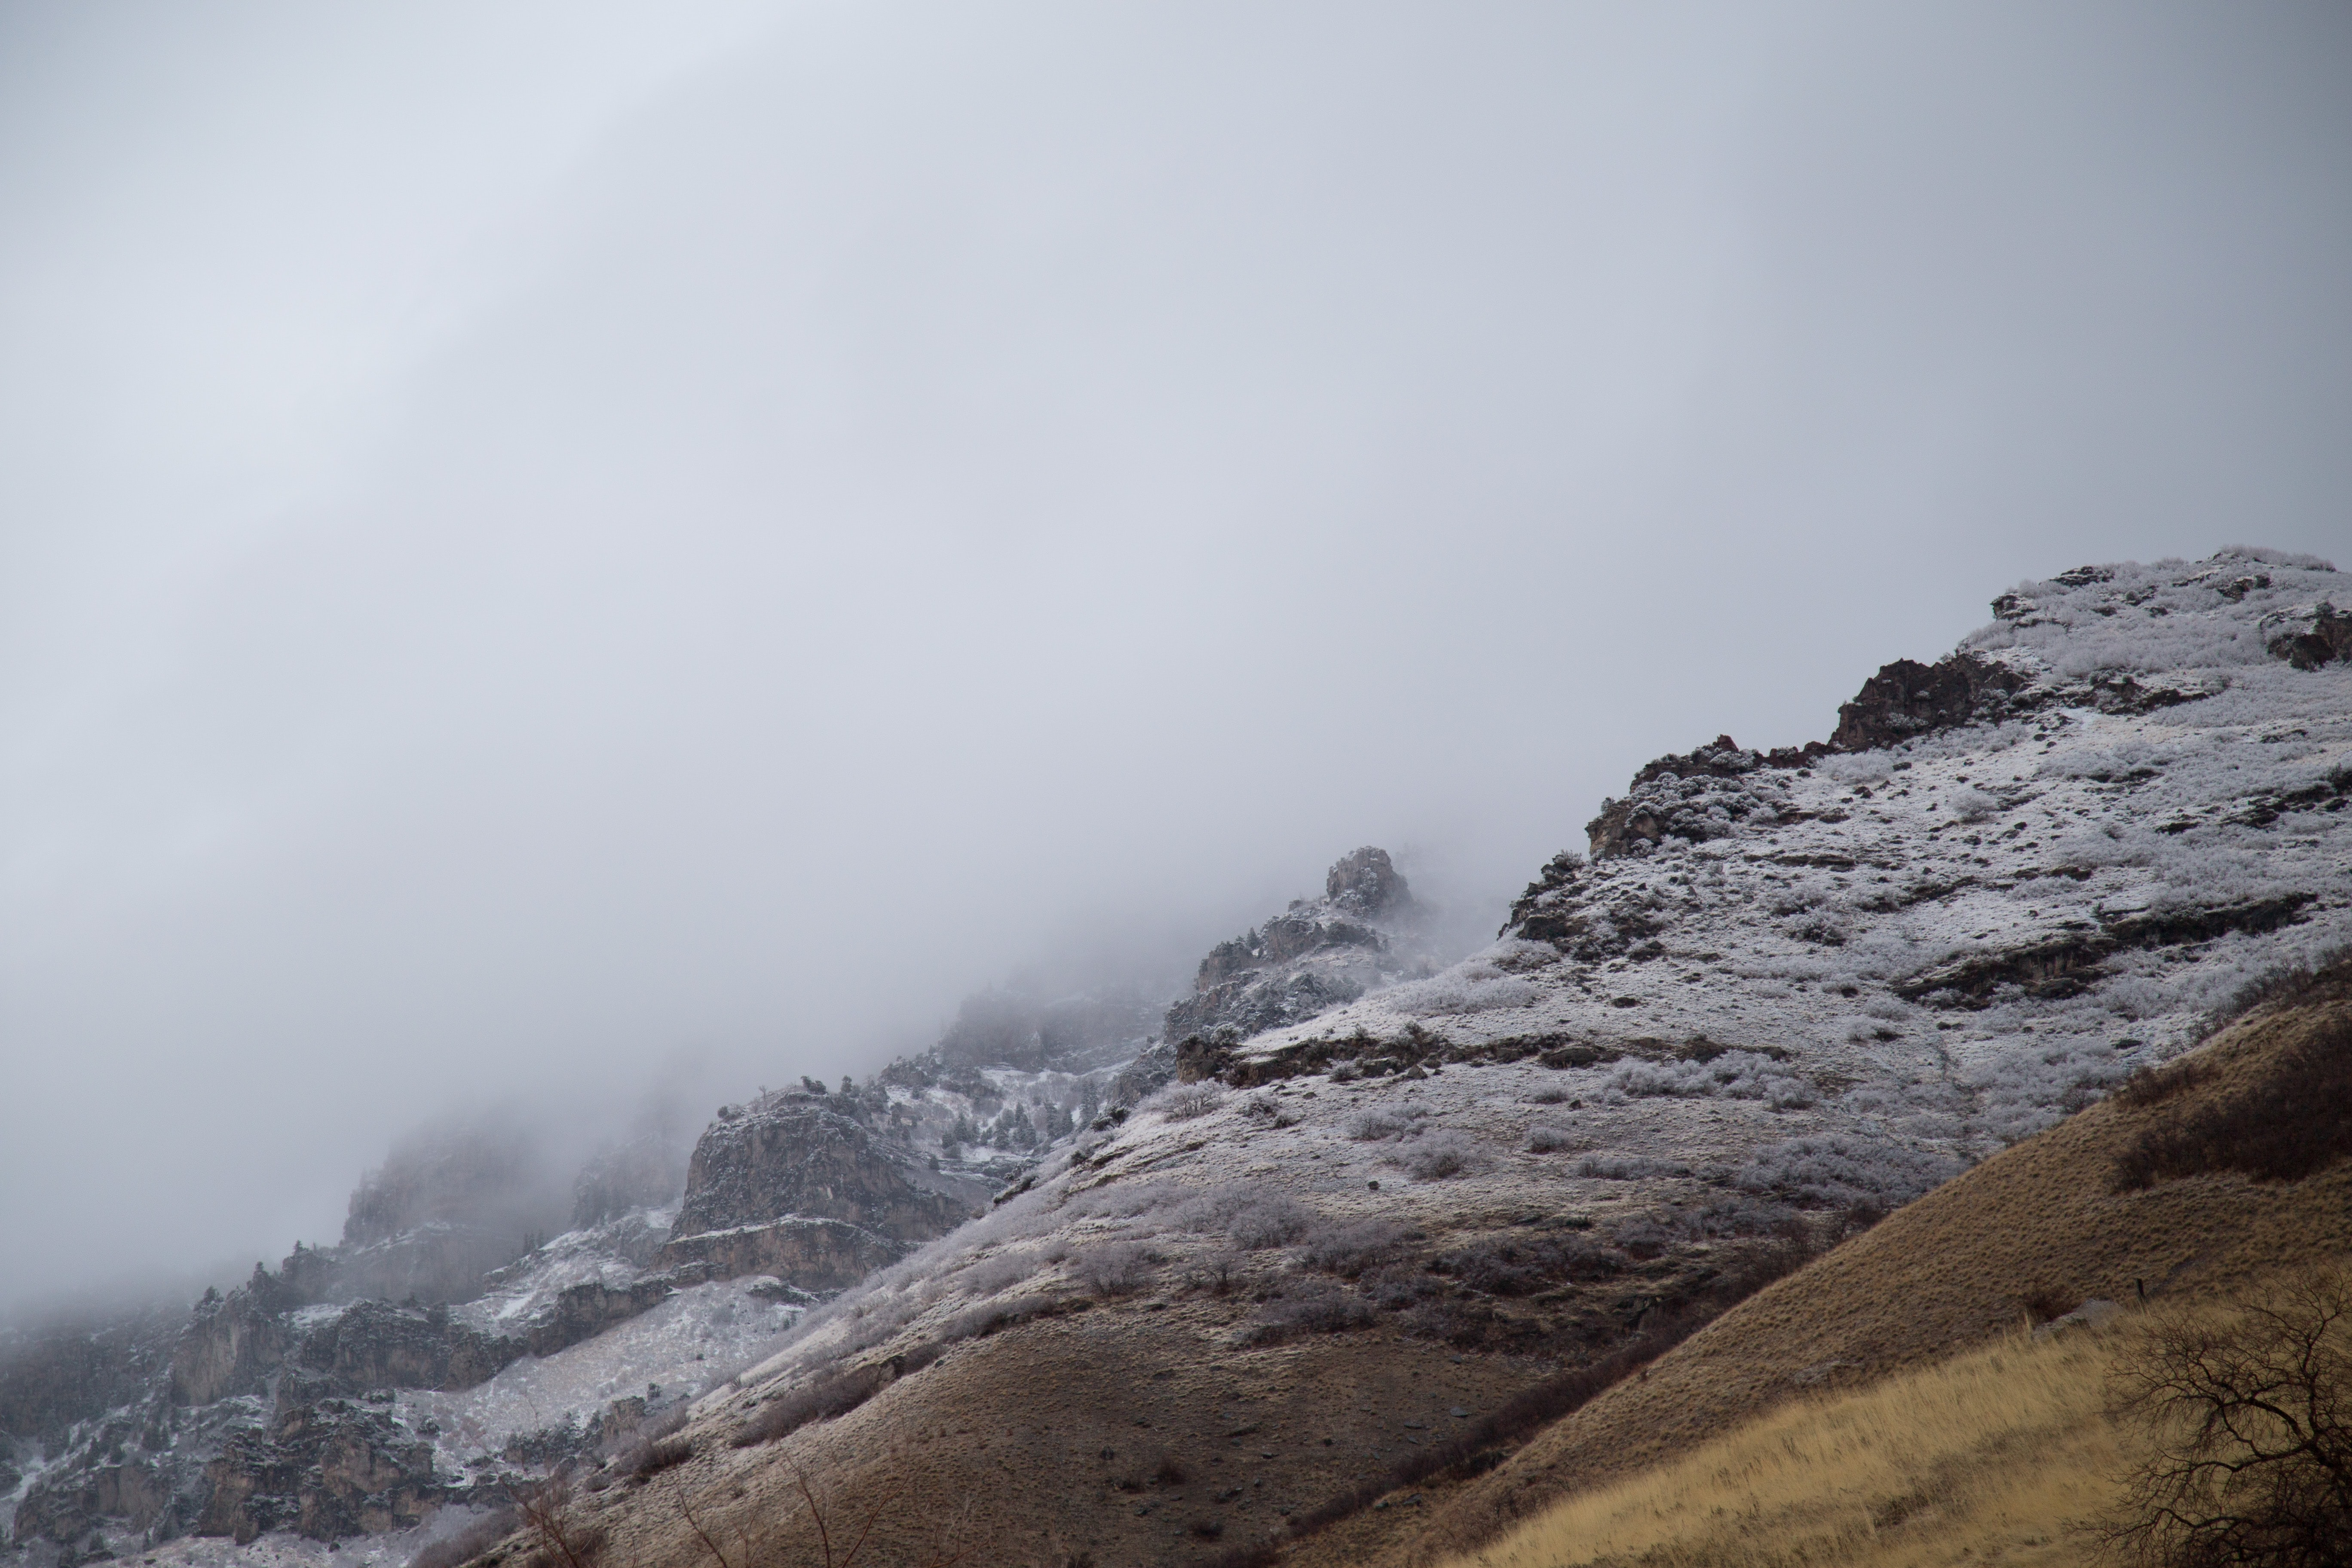 A landscape with mist rolling down mountain peaks